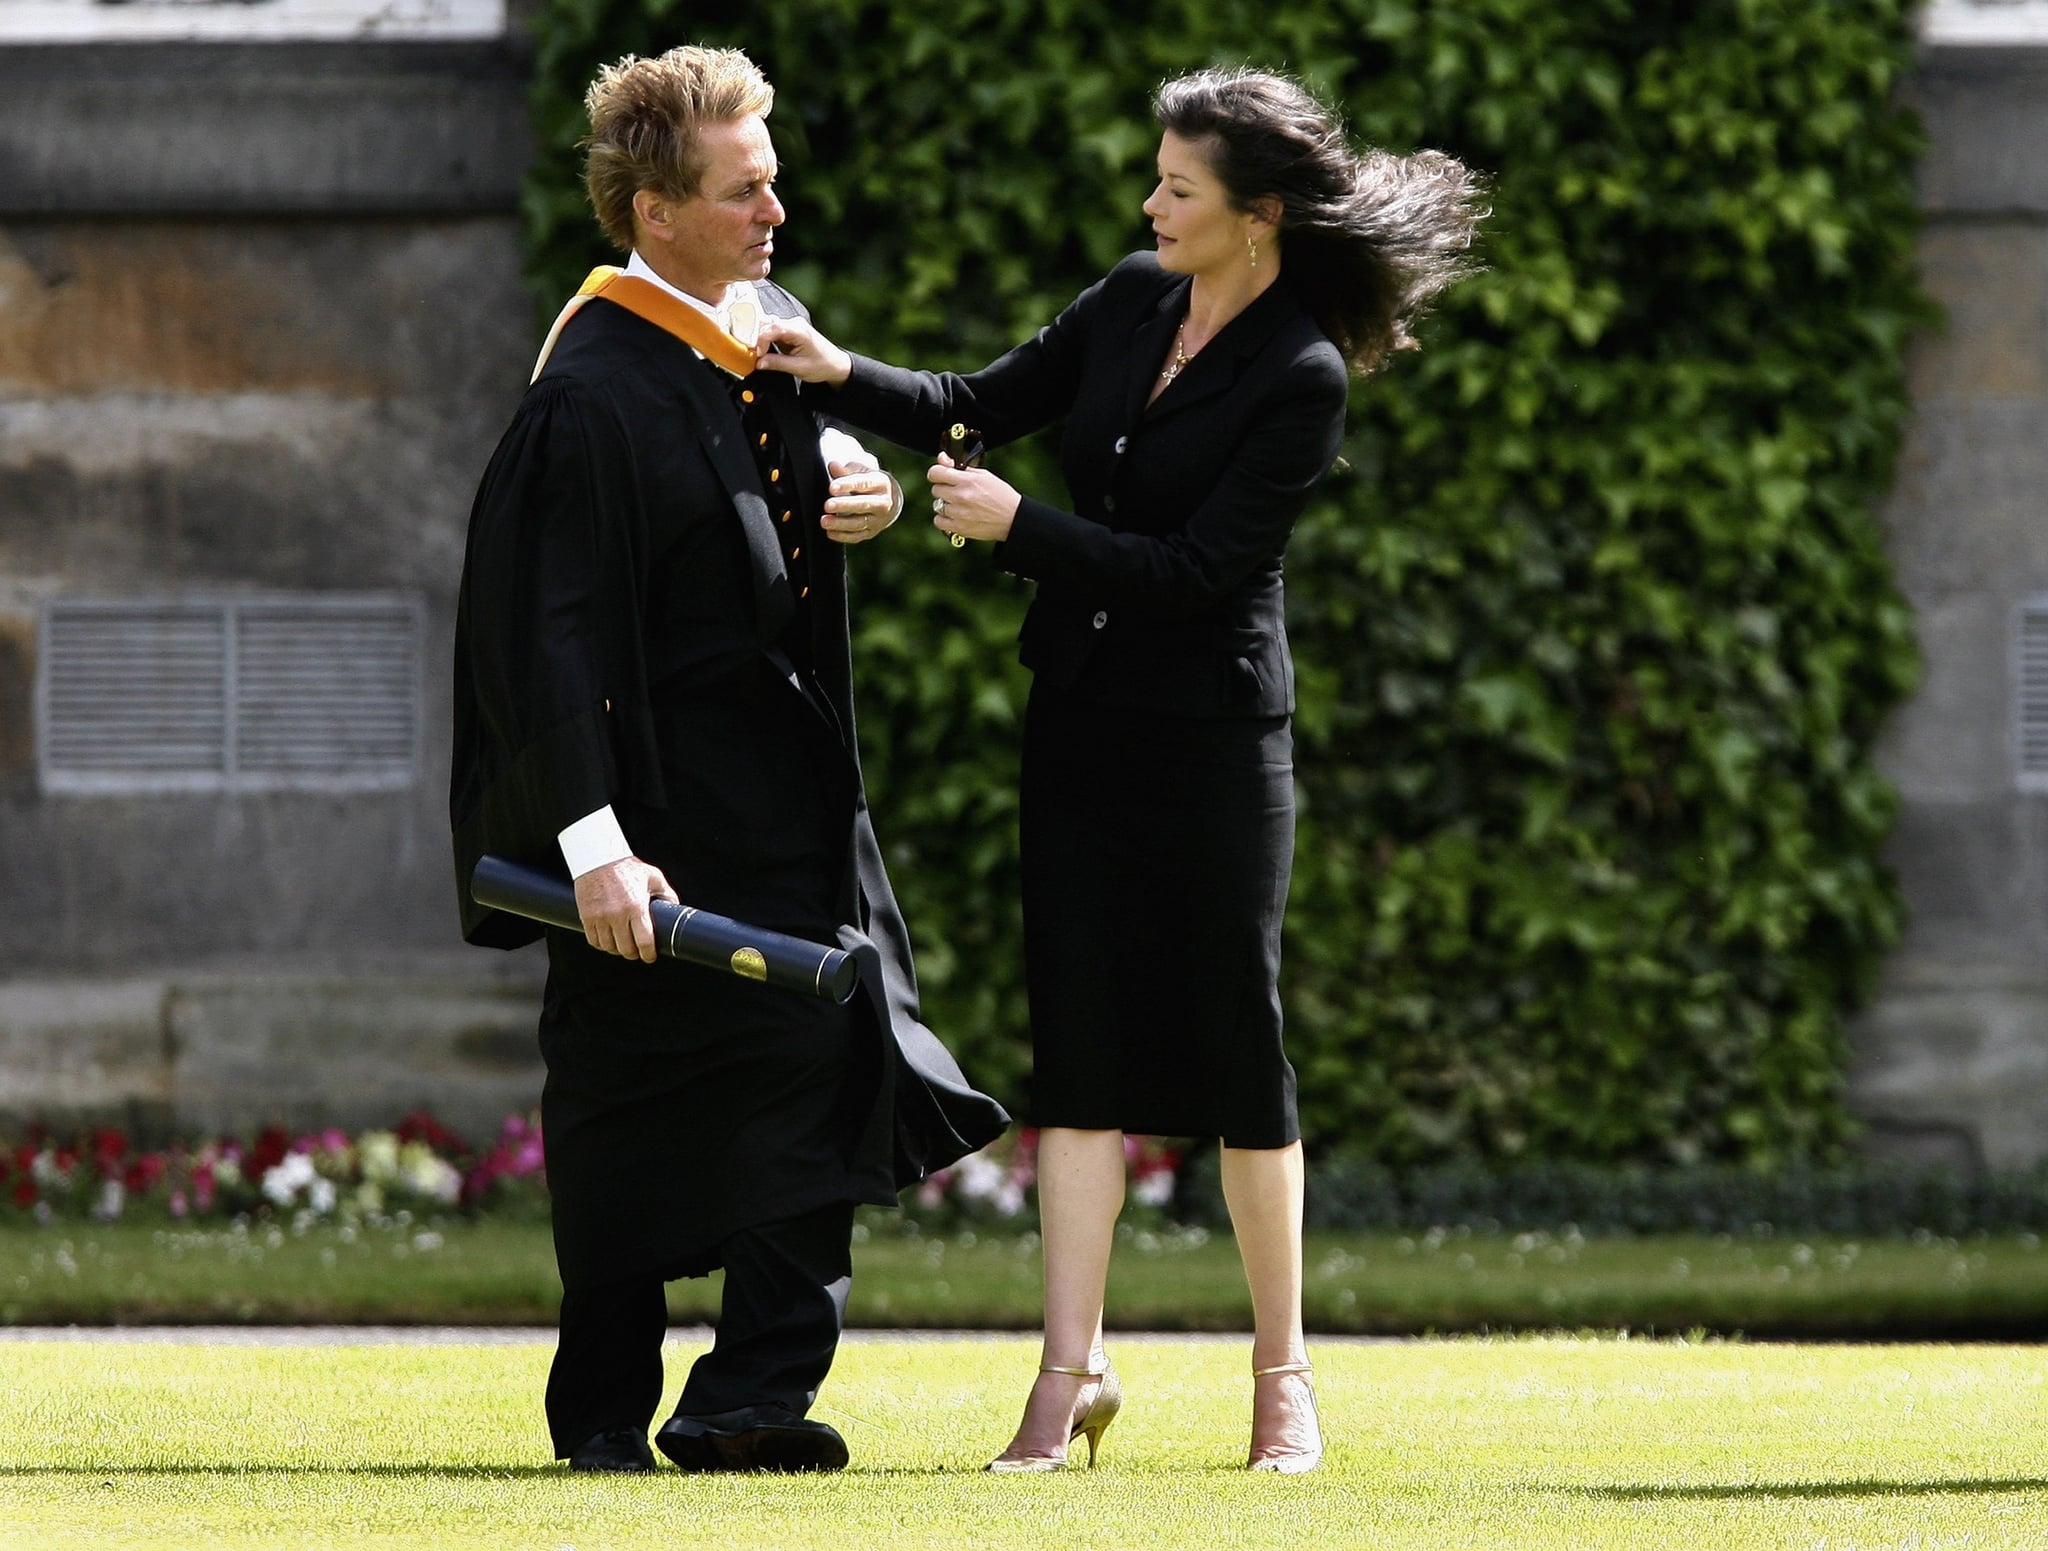 04073_Catherine_Zeta_Jones_Michael_Douglas_Honorary_Degree_Presentation_07